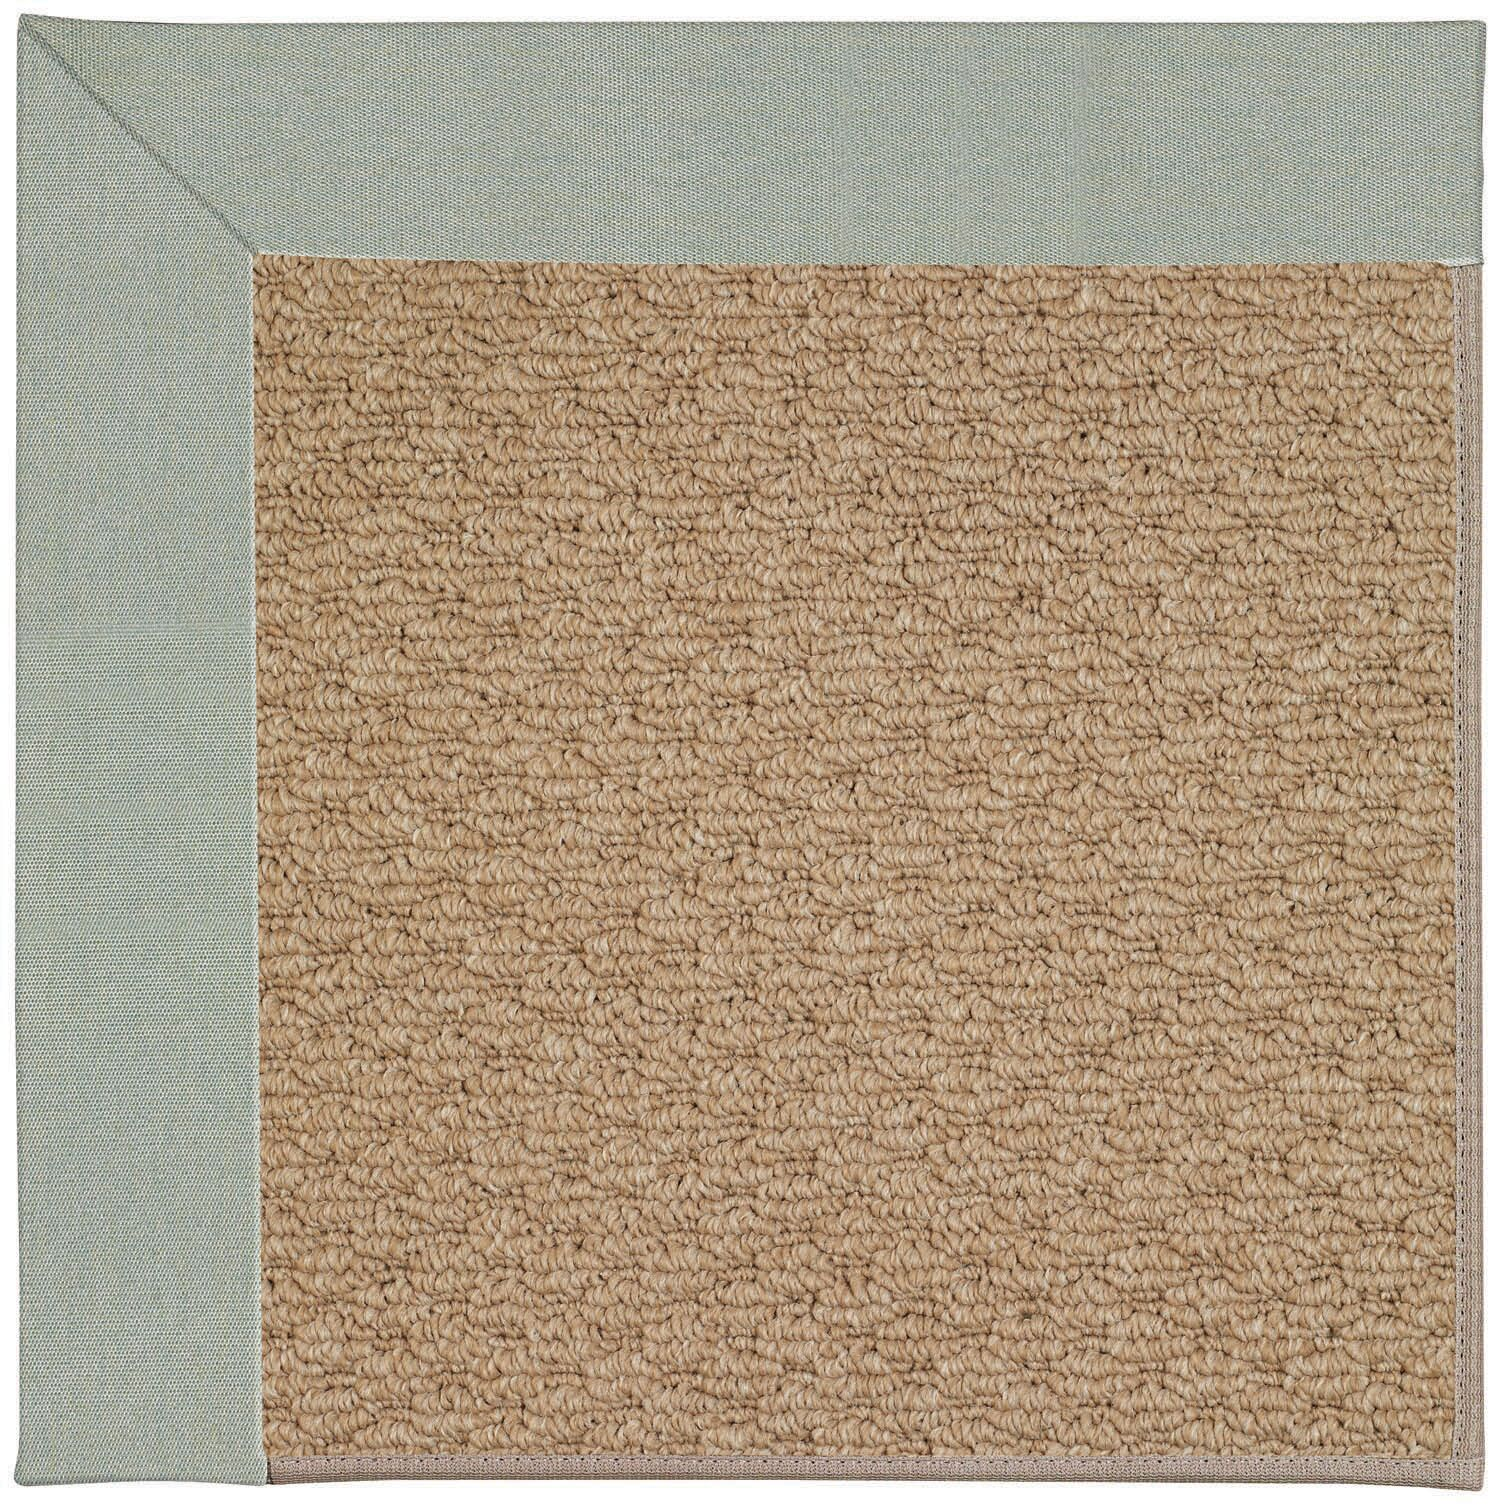 Lisle Machine Tufted Marine Blue/Brown Indoor/Outdoor Area Rug Rug Size: Rectangle 10' x 14'